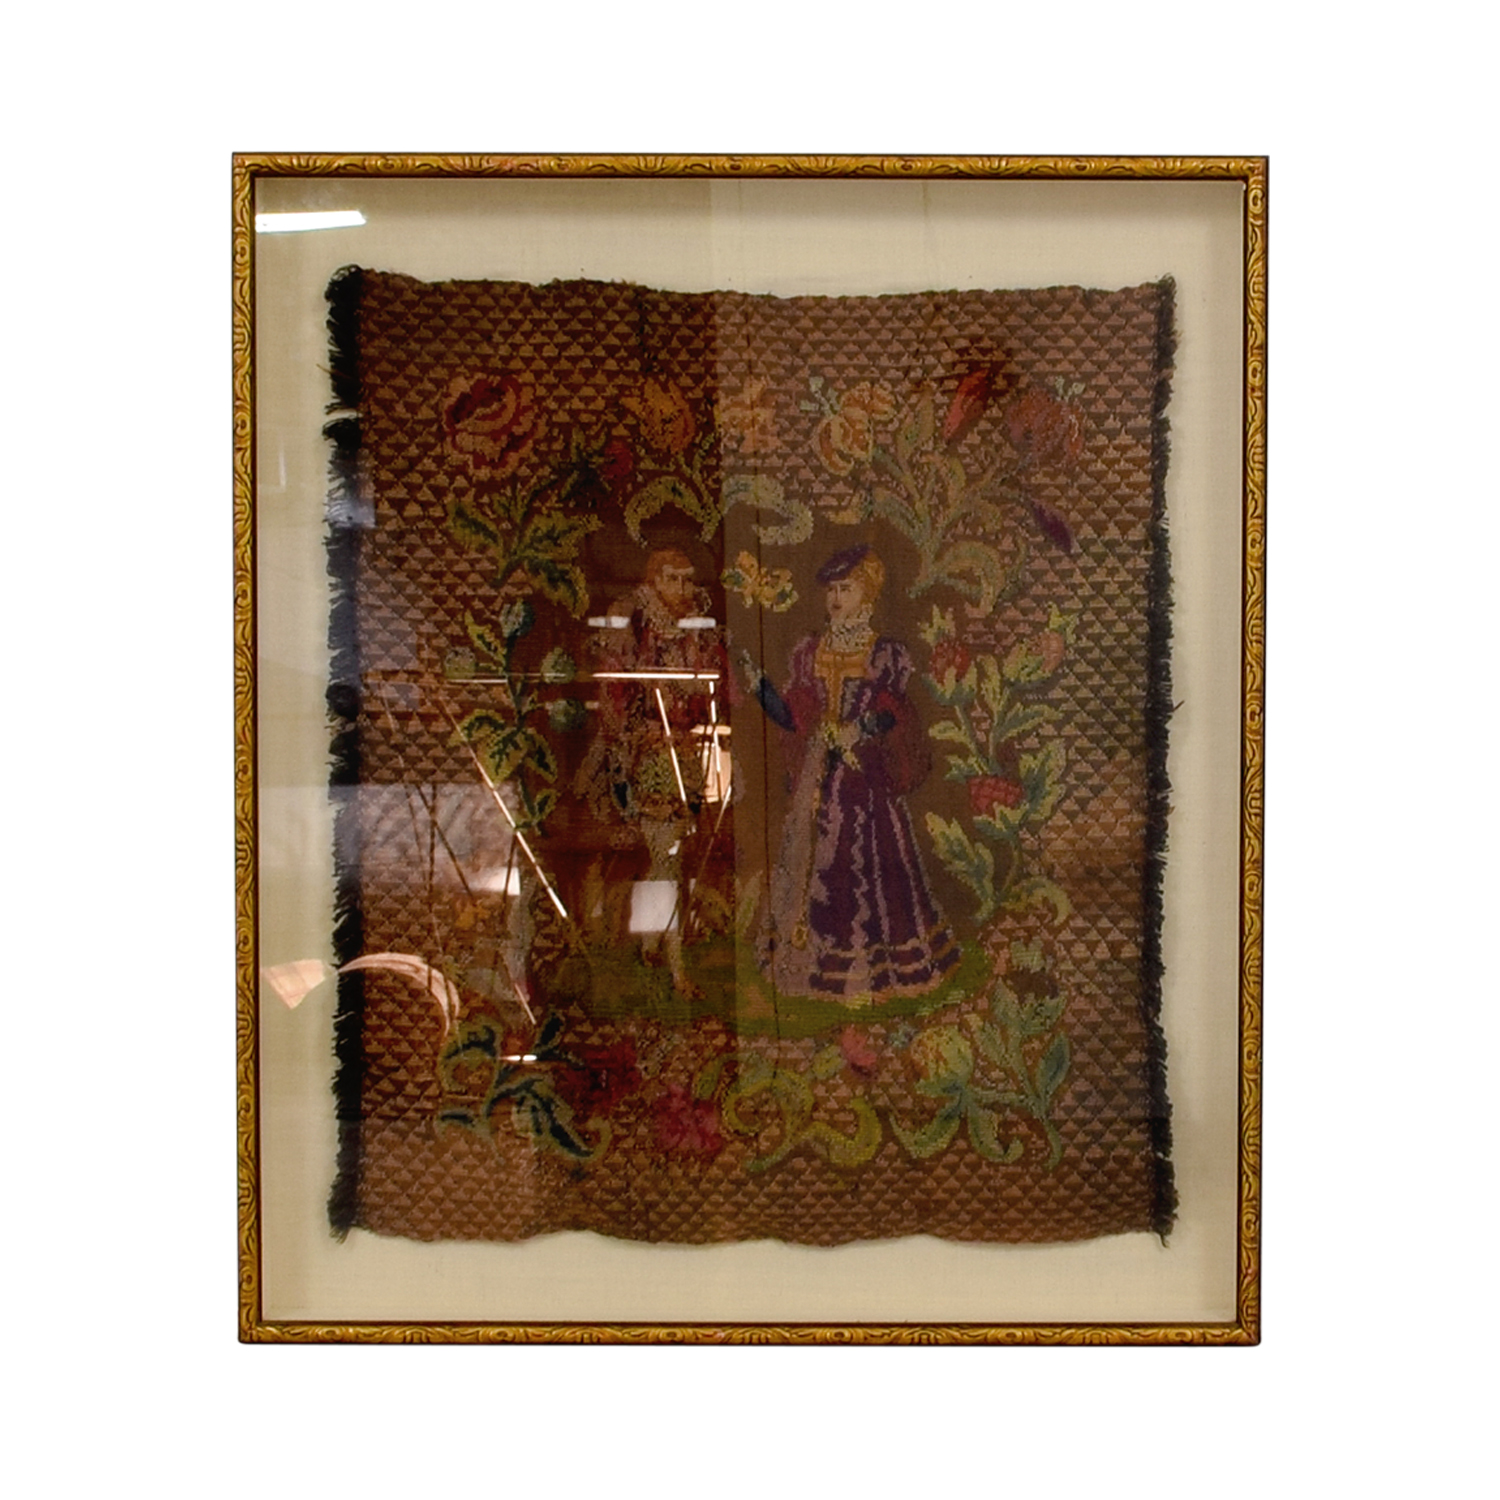 shop ABC Carpet and Home Framed Embroidered Tapestry of Man and Woman ABC Carpet and Home